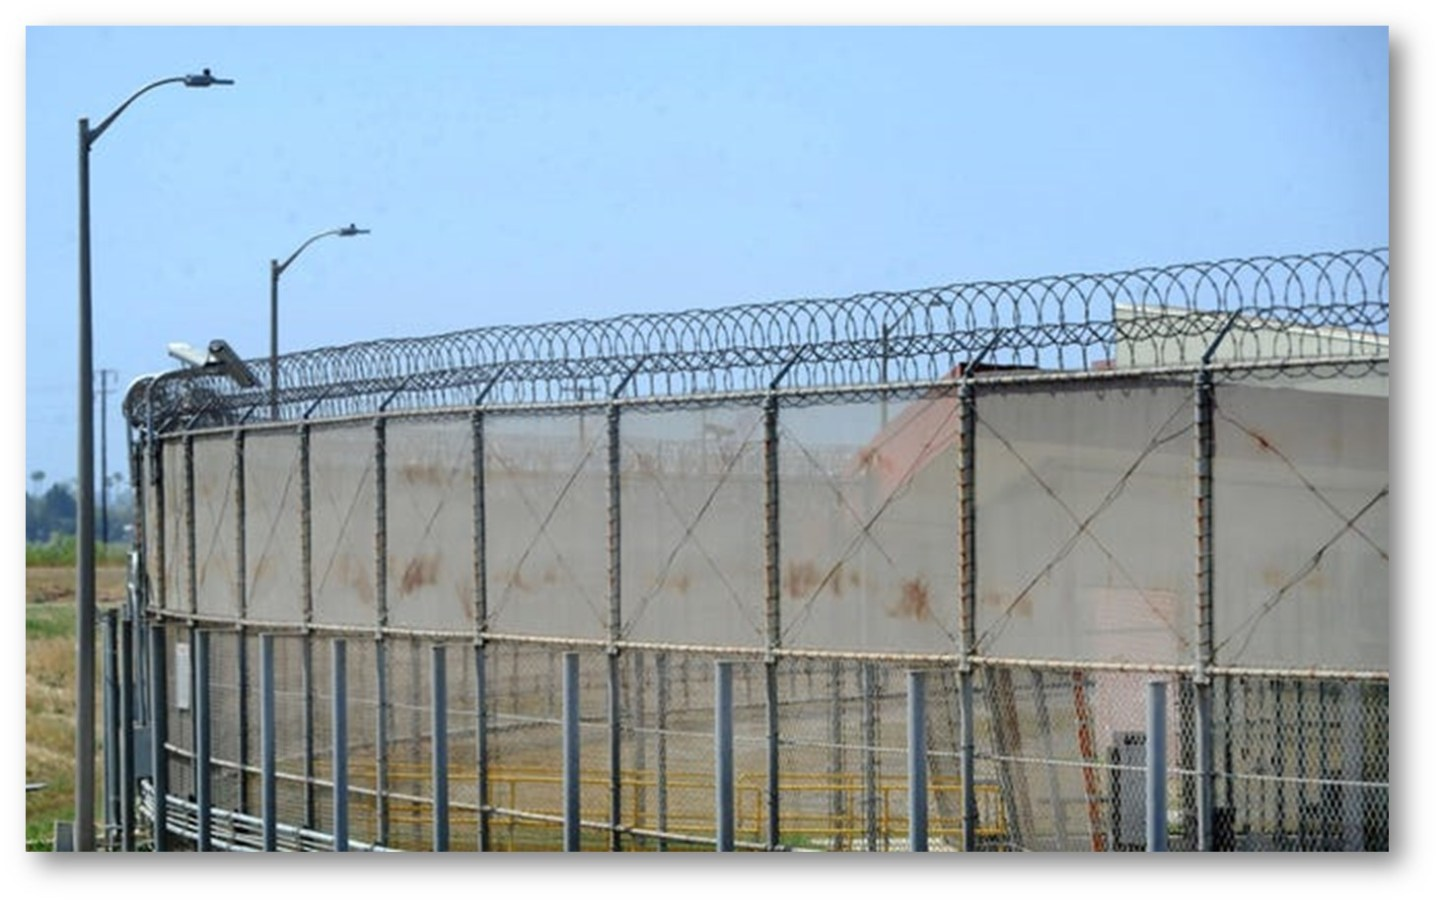 CALIFORNIA JUVENILE PRISONS SUSPEND INTAKES